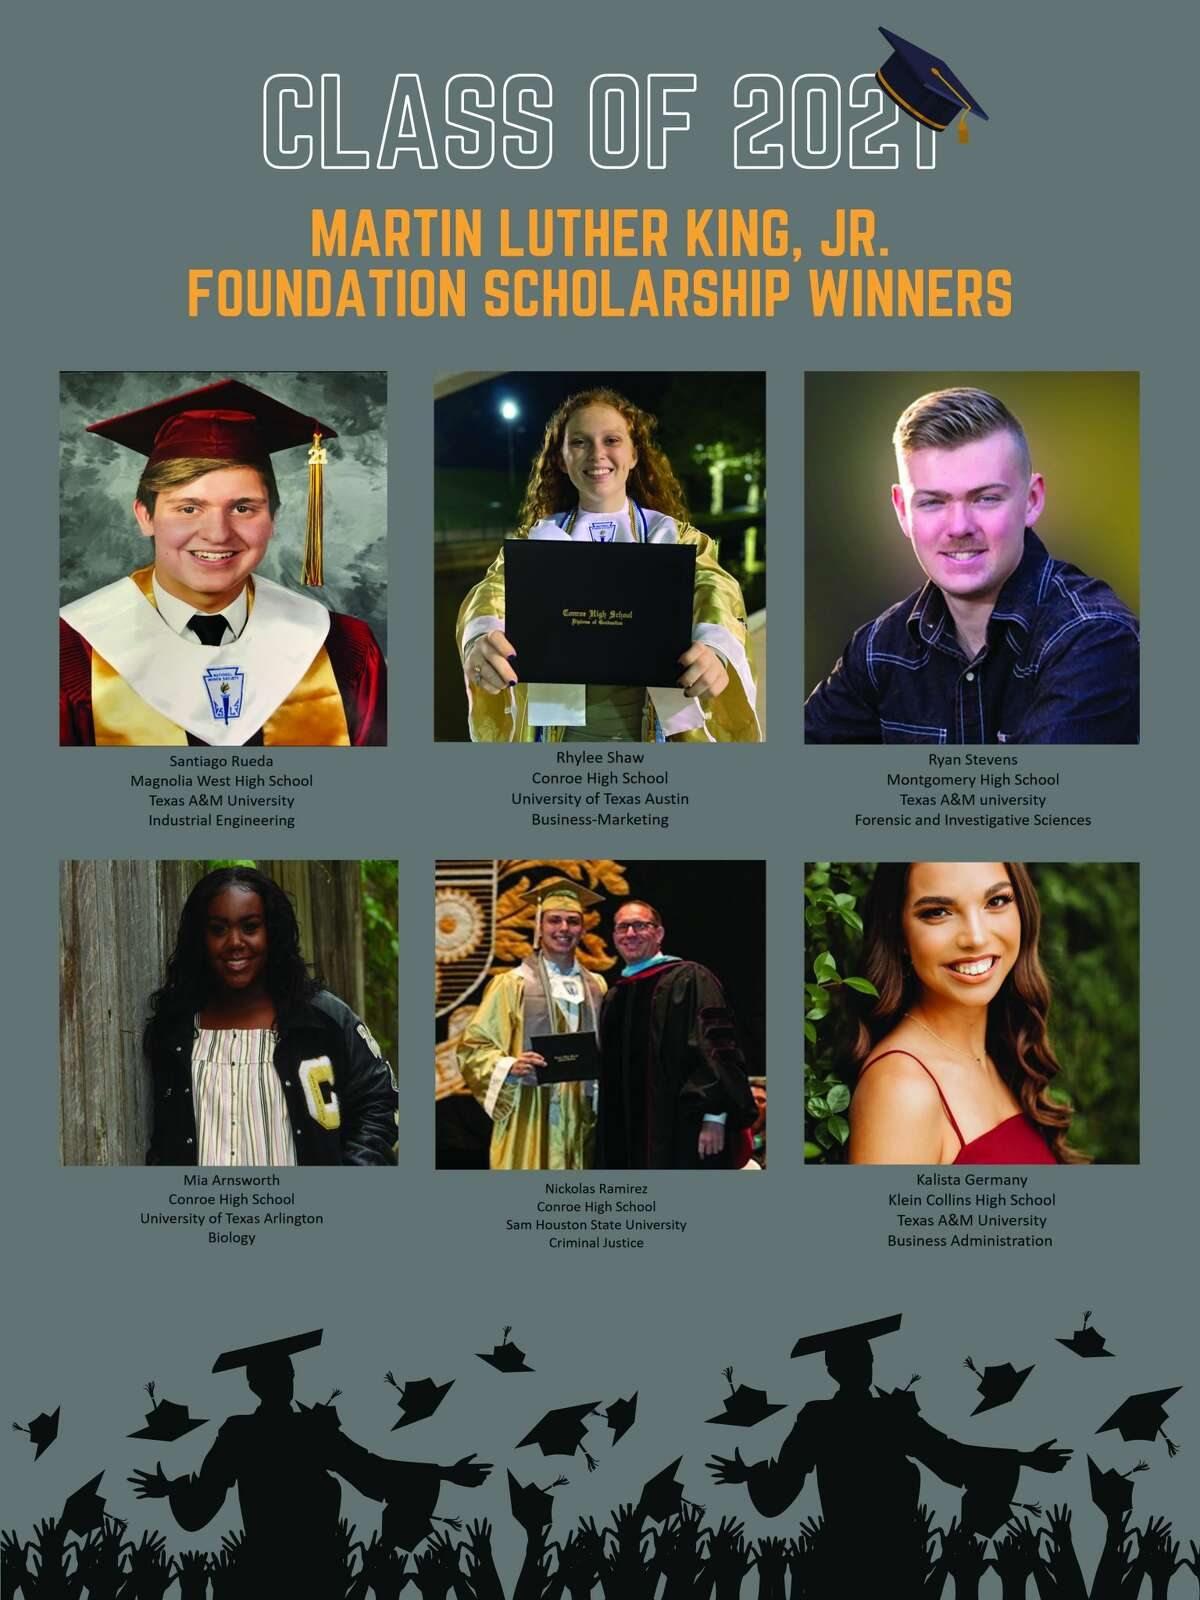 On May 15, The Martin Luther King, Jr. Foundation awarded 10 $1,000 scholarships to deserving students in Montgomery and Harris counties. This was made possible through the generosity of our sponsors, The Howard Hughes Corporation, WoodForest Bank, The McKee Family Foundation, TME Enterprises, Elsa and Jimmie Dotson, and many community donors. Donations made payable to the MLK Scholarship Foundation can me mailed to594 Sawdust Road, P. O. Box 252, The Woodlands, Texas 77389.